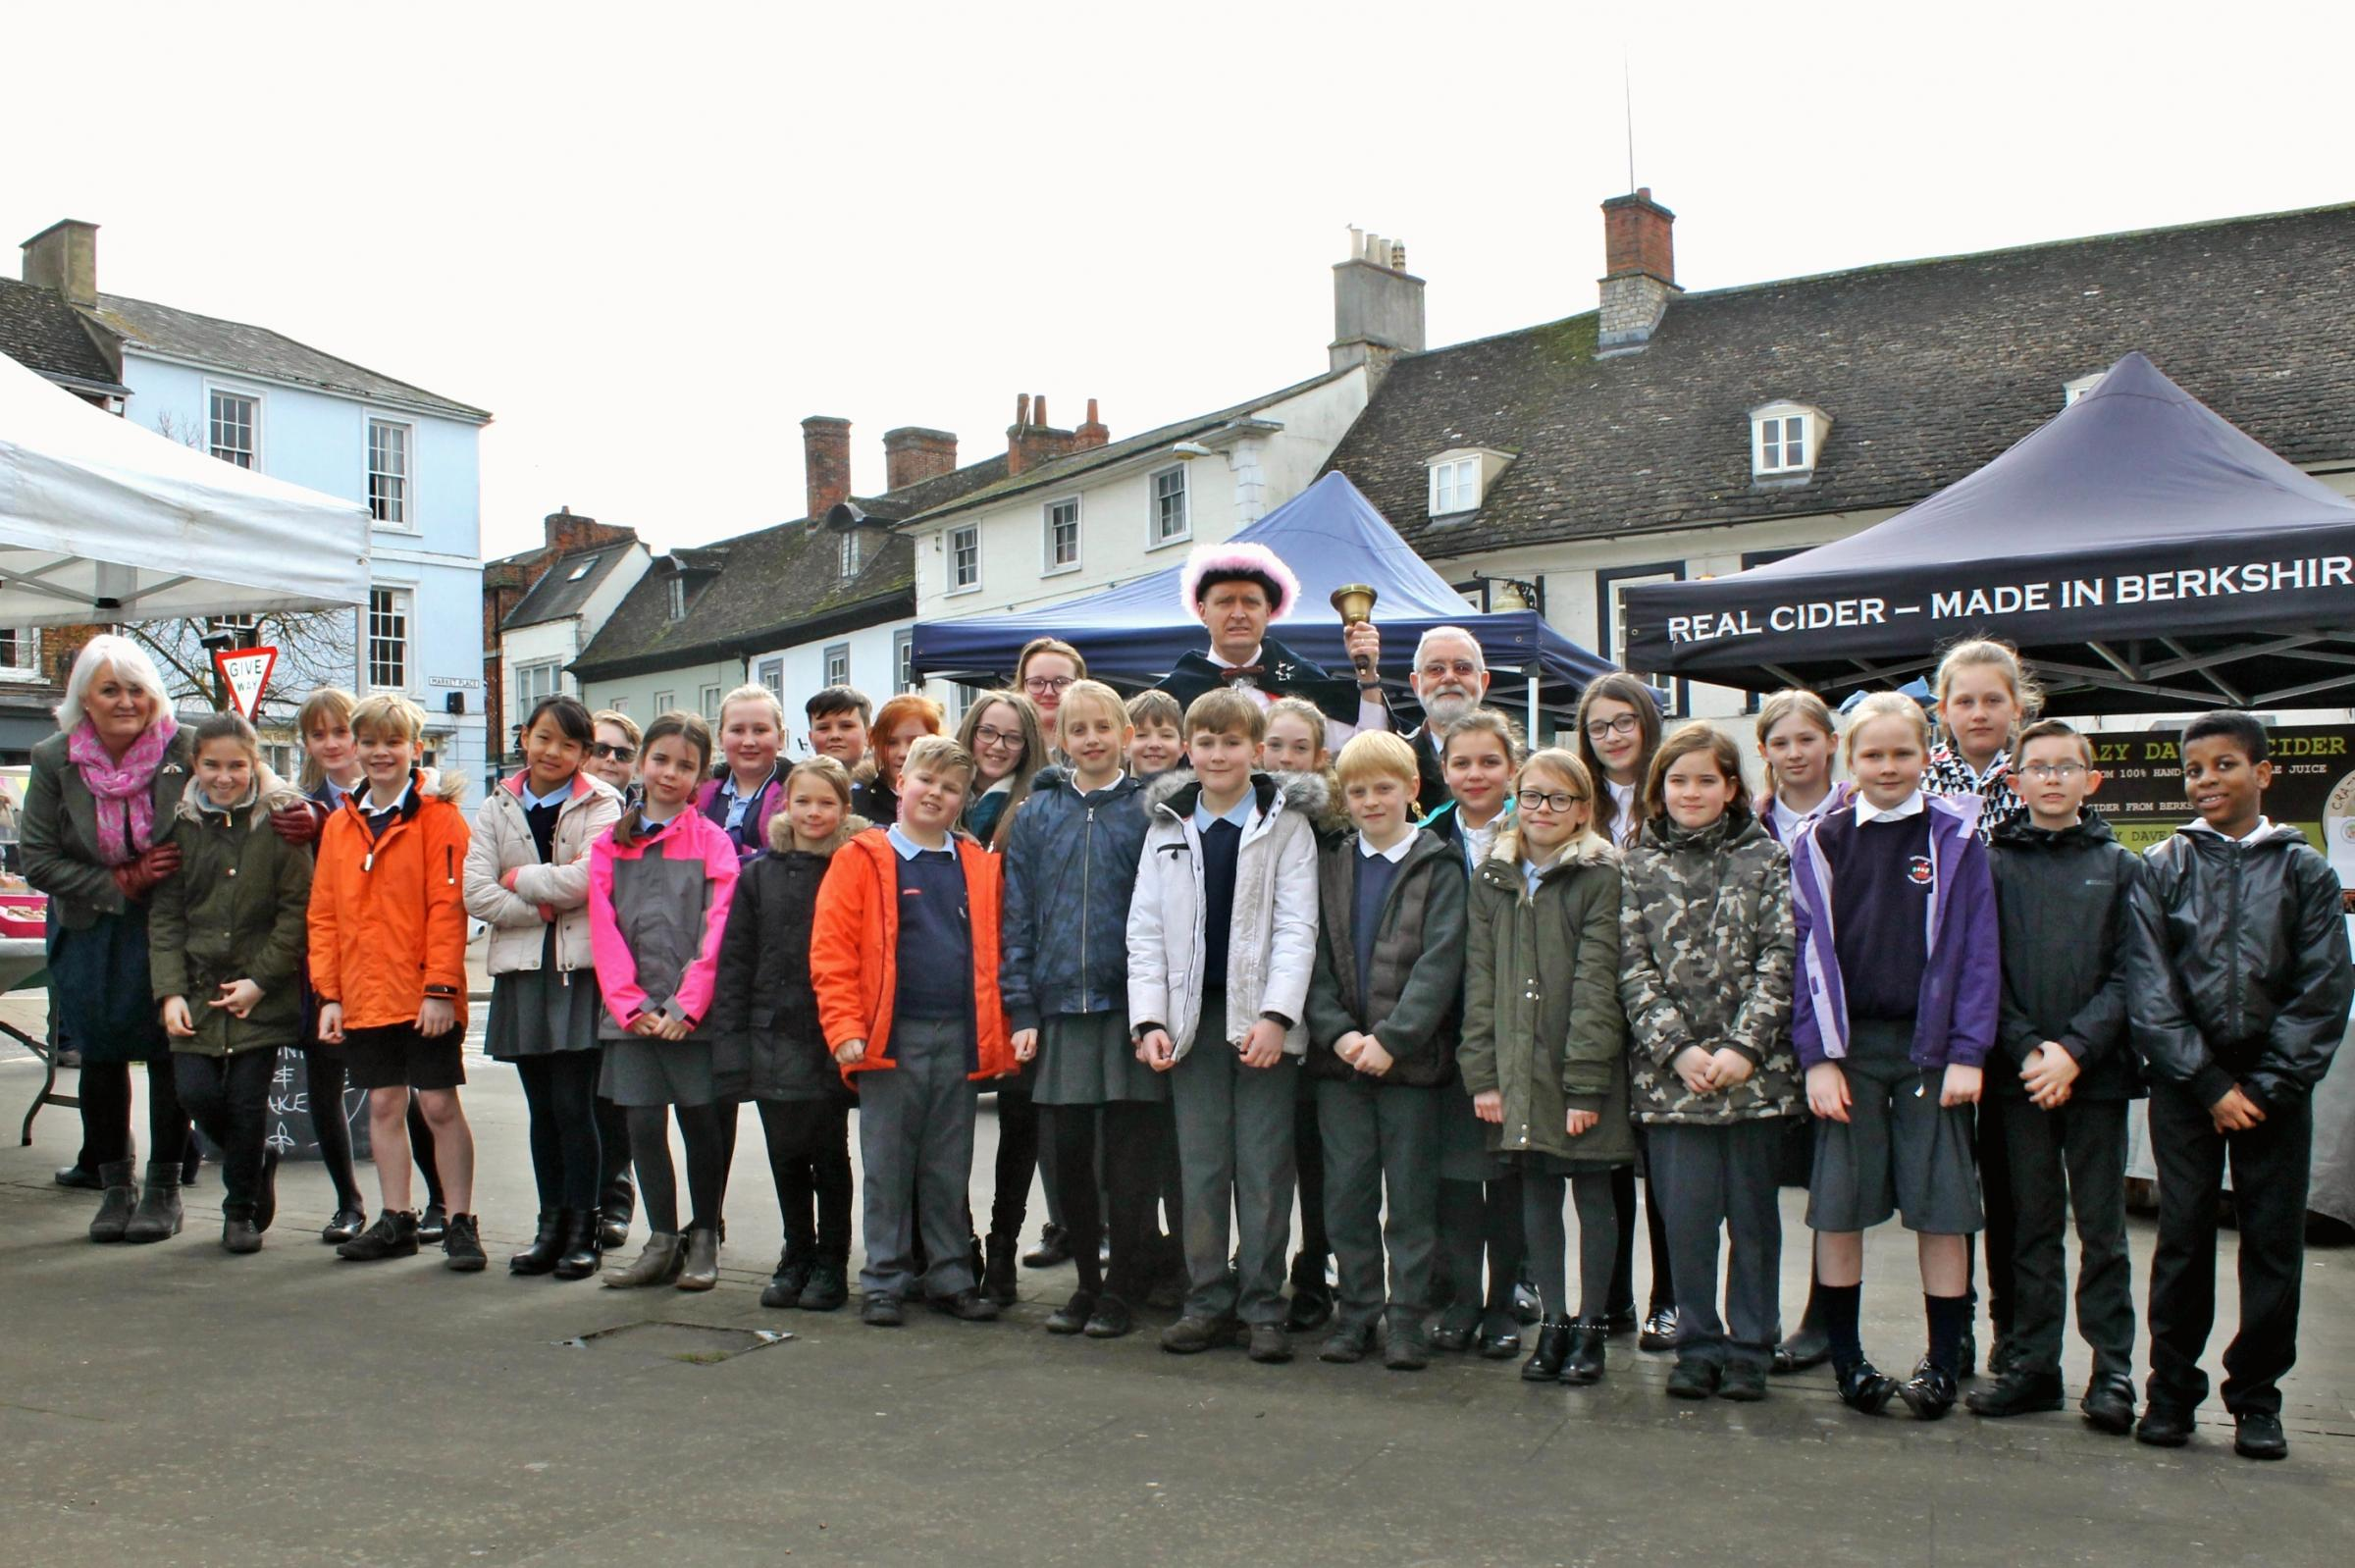 Children from Faringdon Junior School with town crier Sjoerd Vogt and Mayor of Faringdon Mike Wise celebrating the town's 800th anniversary market on Tuesday, March 6, 2018. Picture: Faringdon Town Council